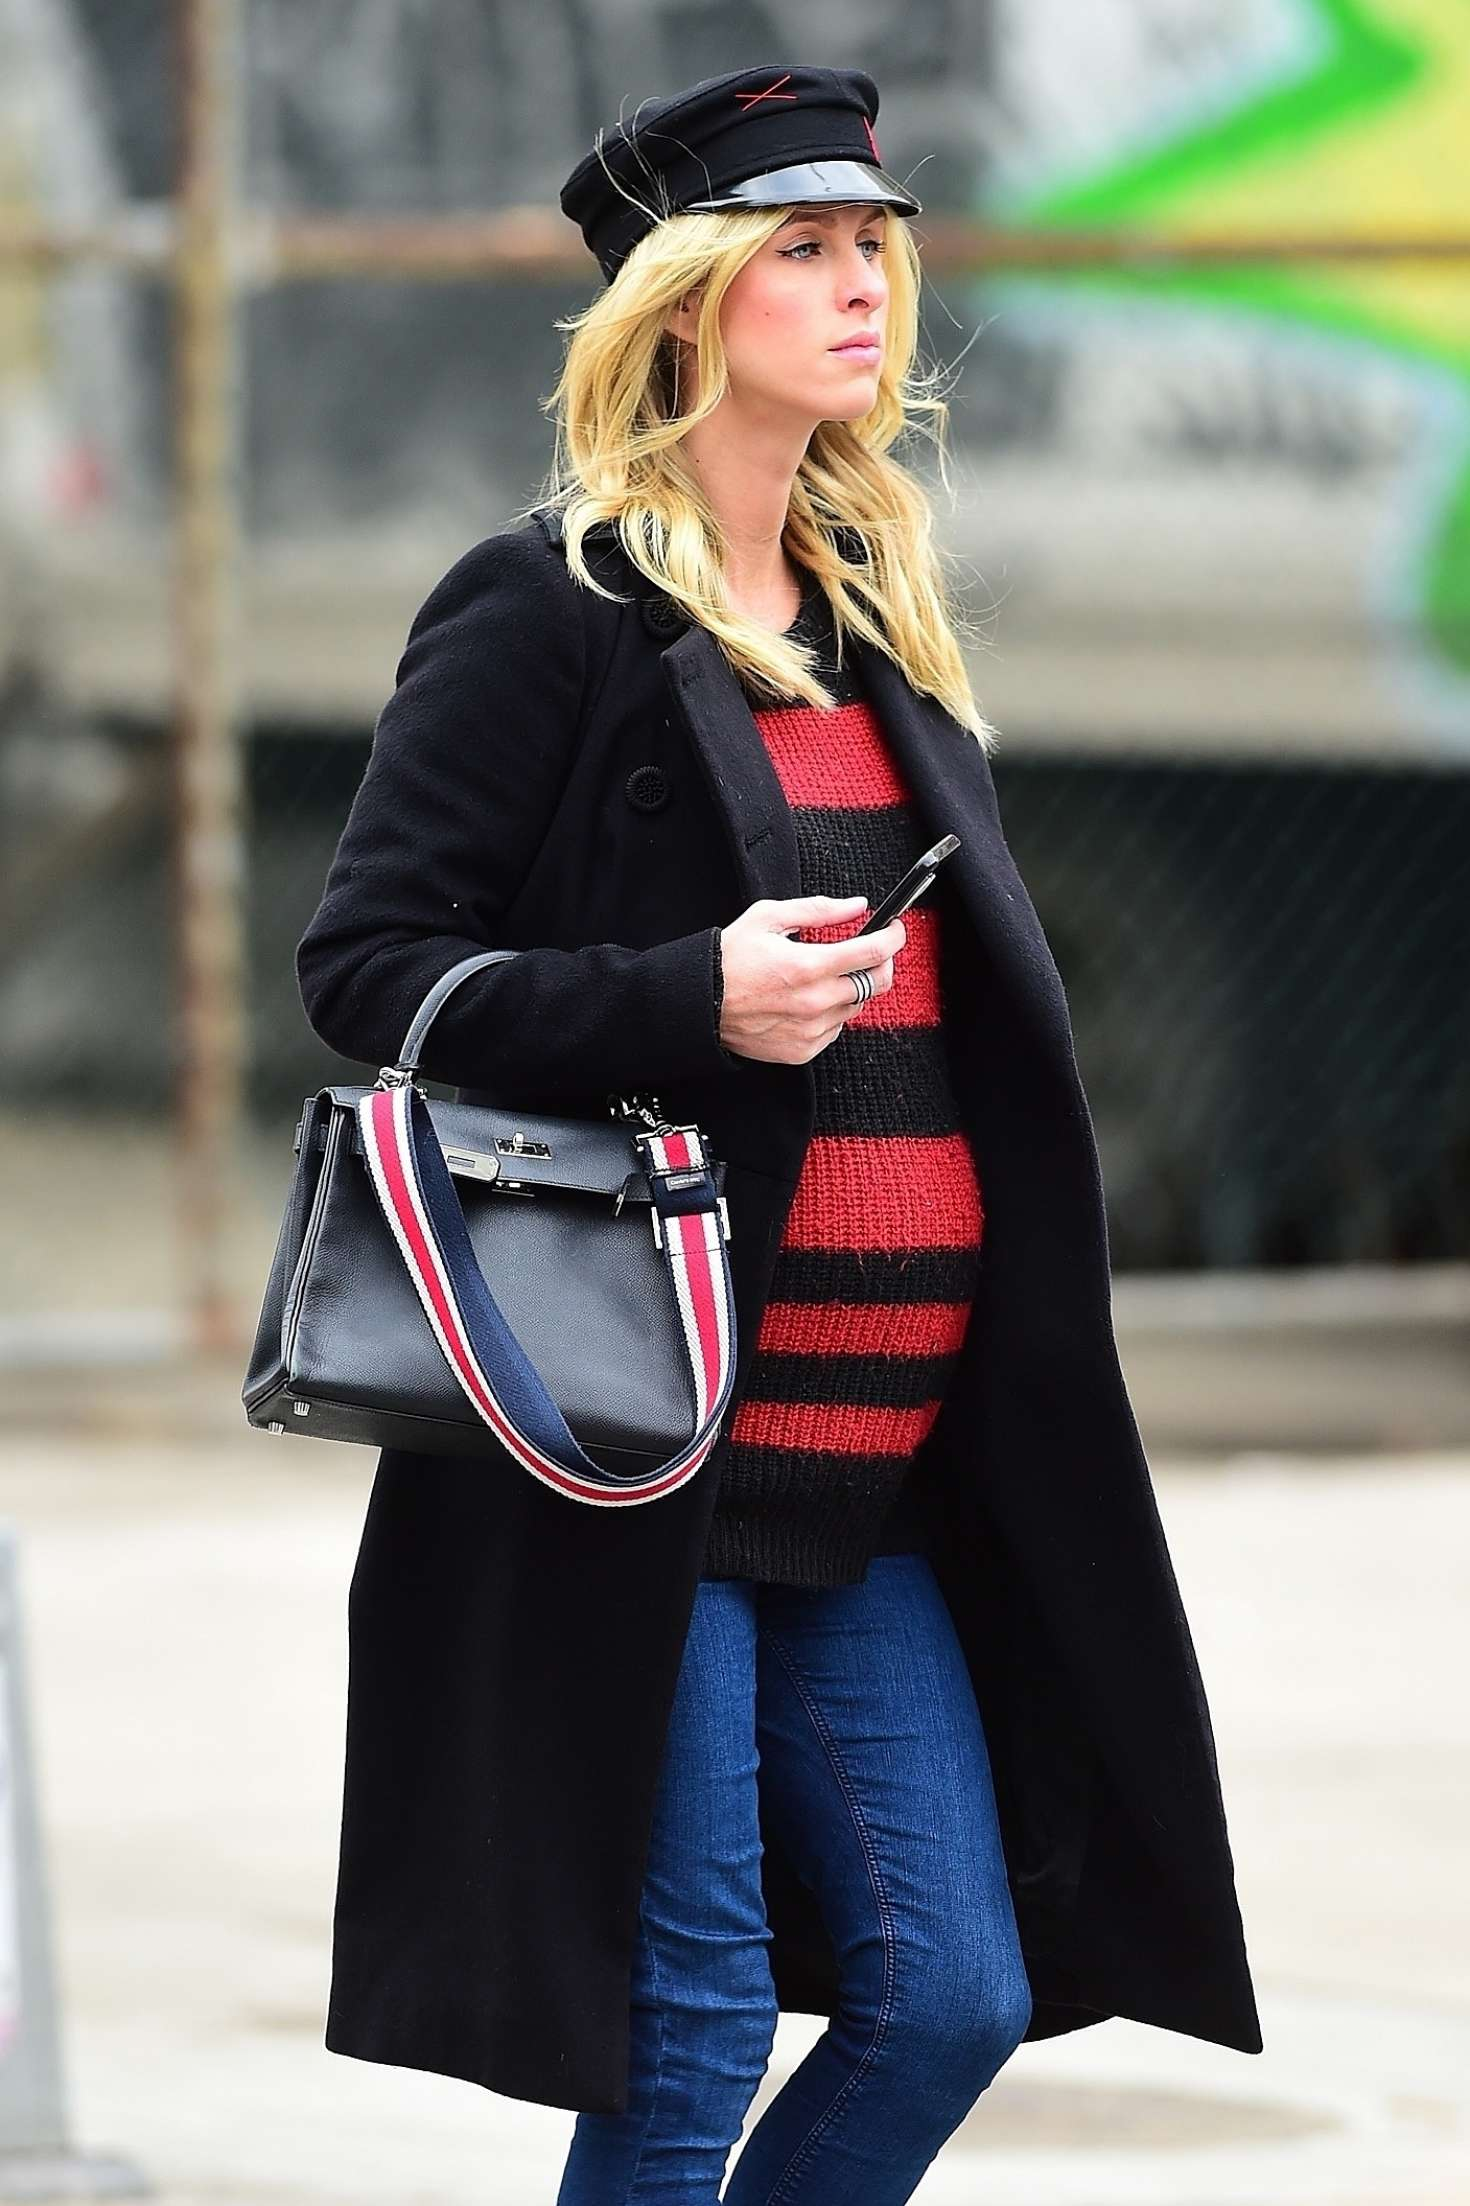 Nicky Hilton in Black Coat and Jeans out in New York City